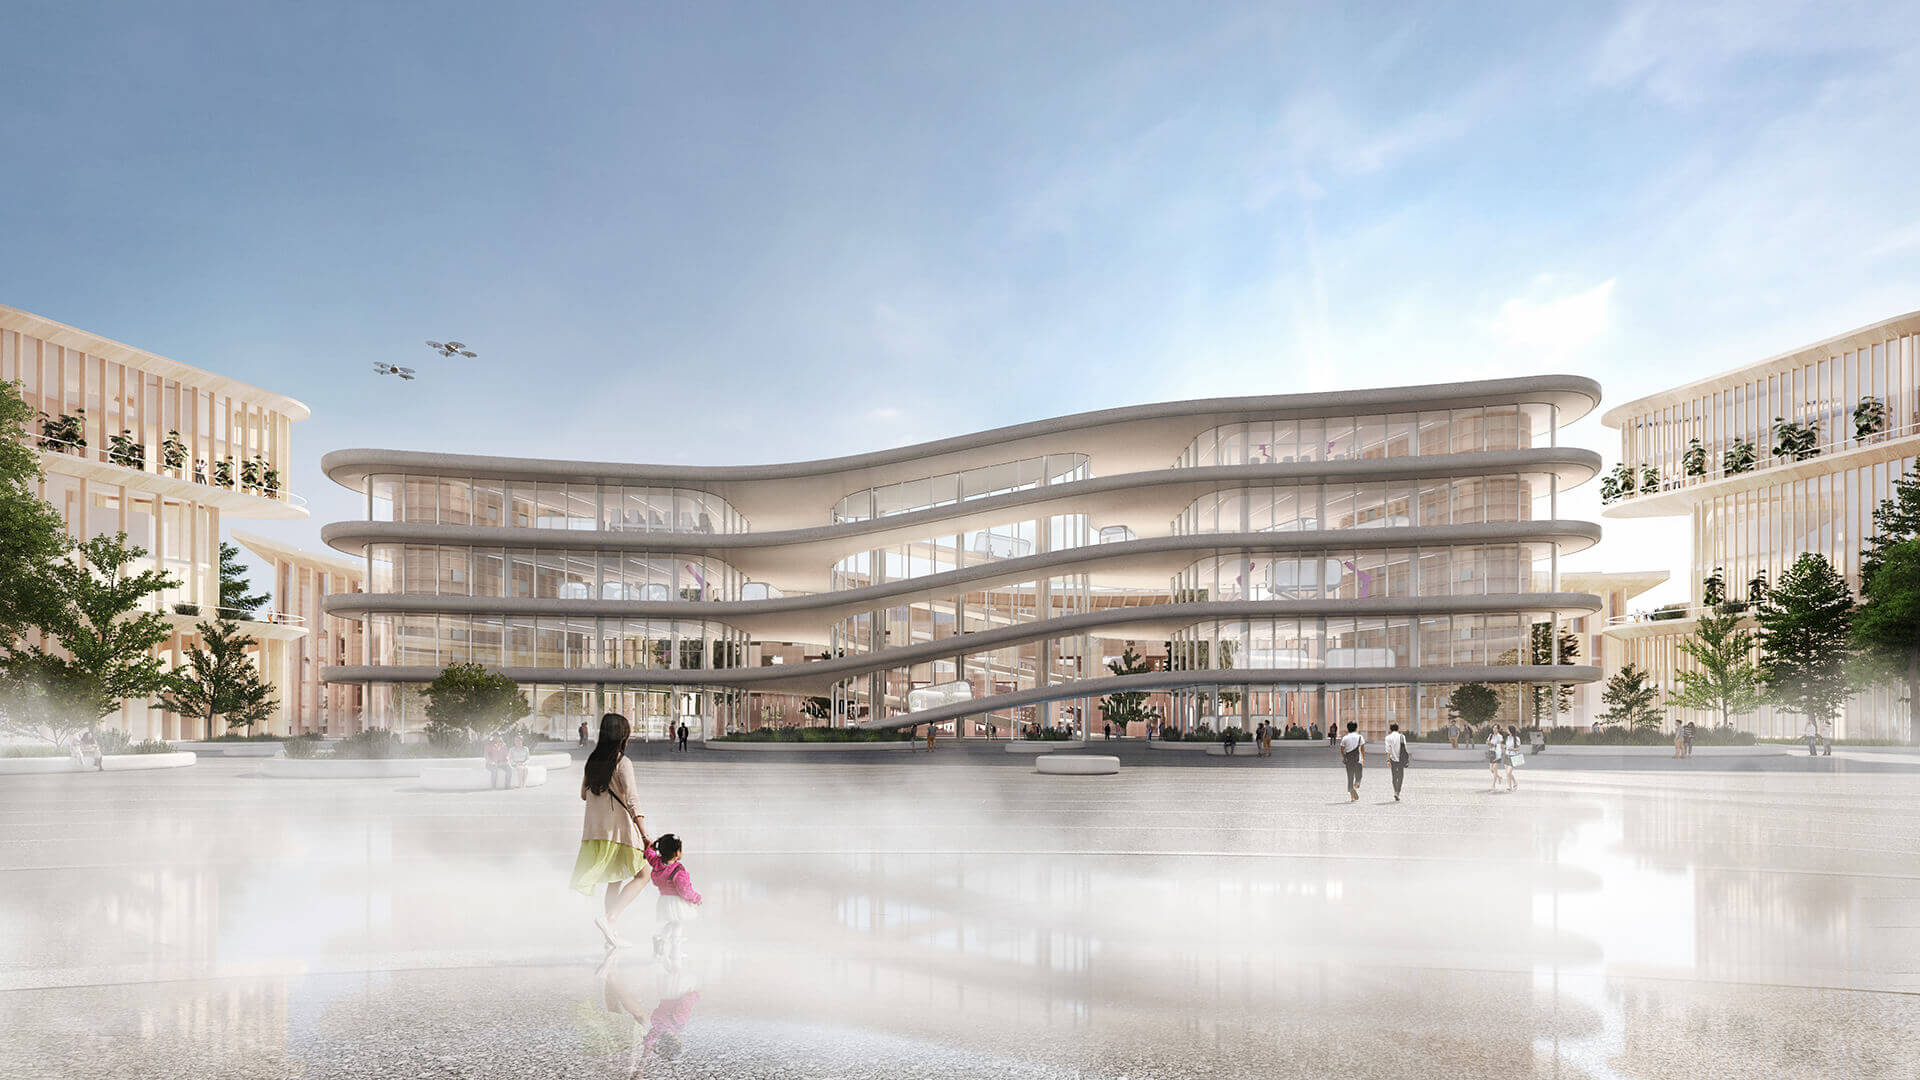 The central city plaza that encourages interaction and innovation | Woven City | Bjarke Ingels Group | STIRworld